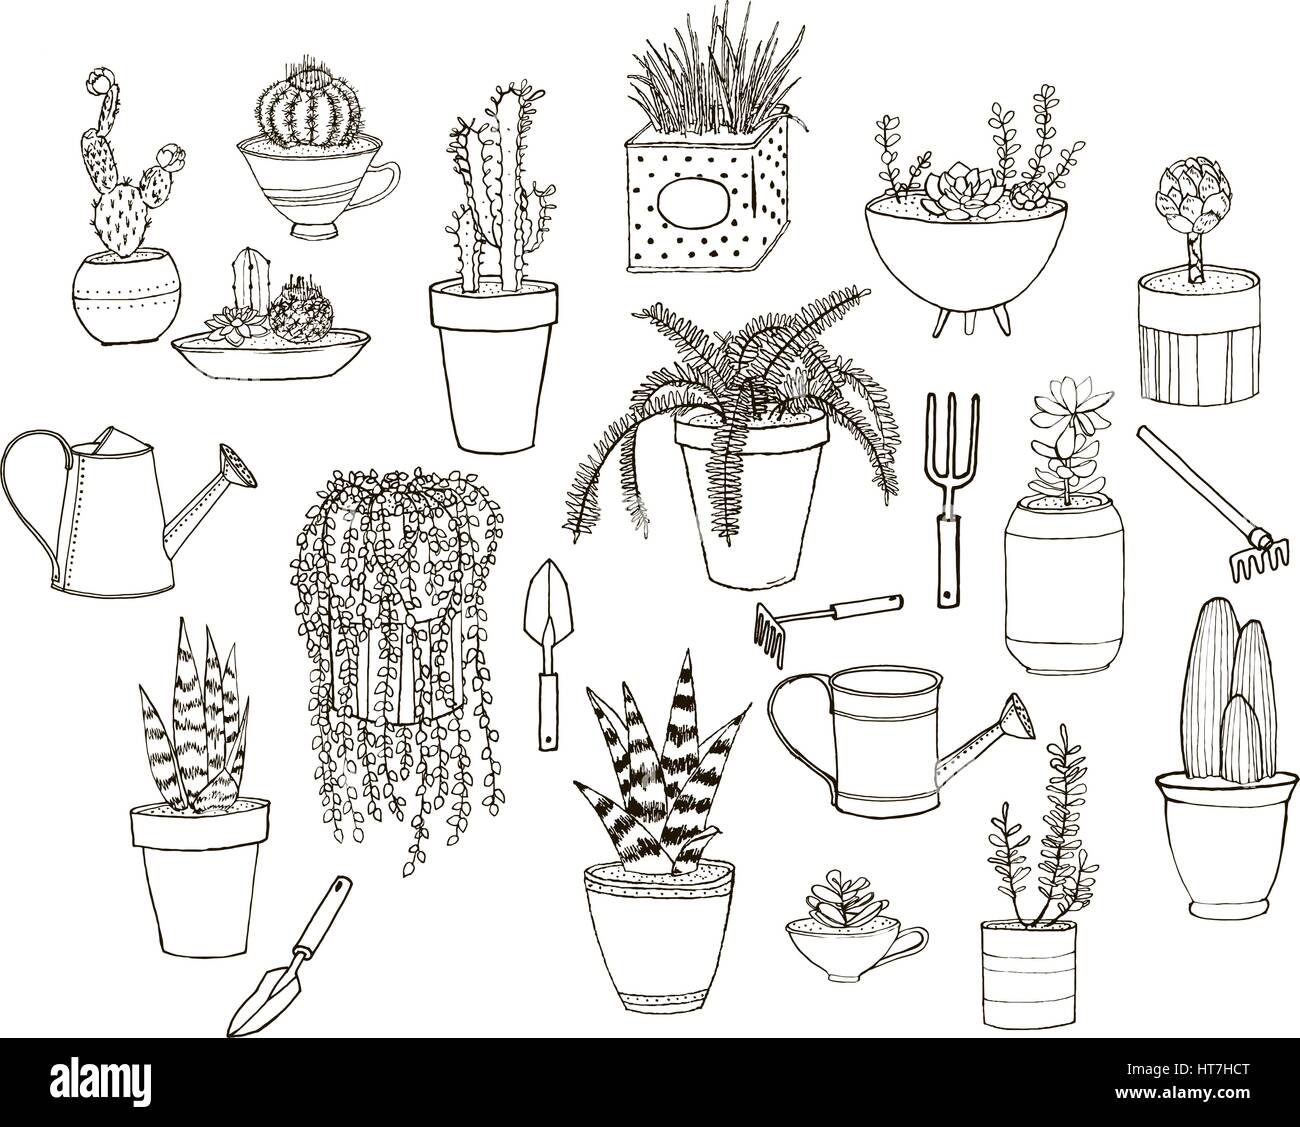 Set of hand drawn images with potted plants and tools. Clean line art suitable for repaining and coloring books. - Stock Image